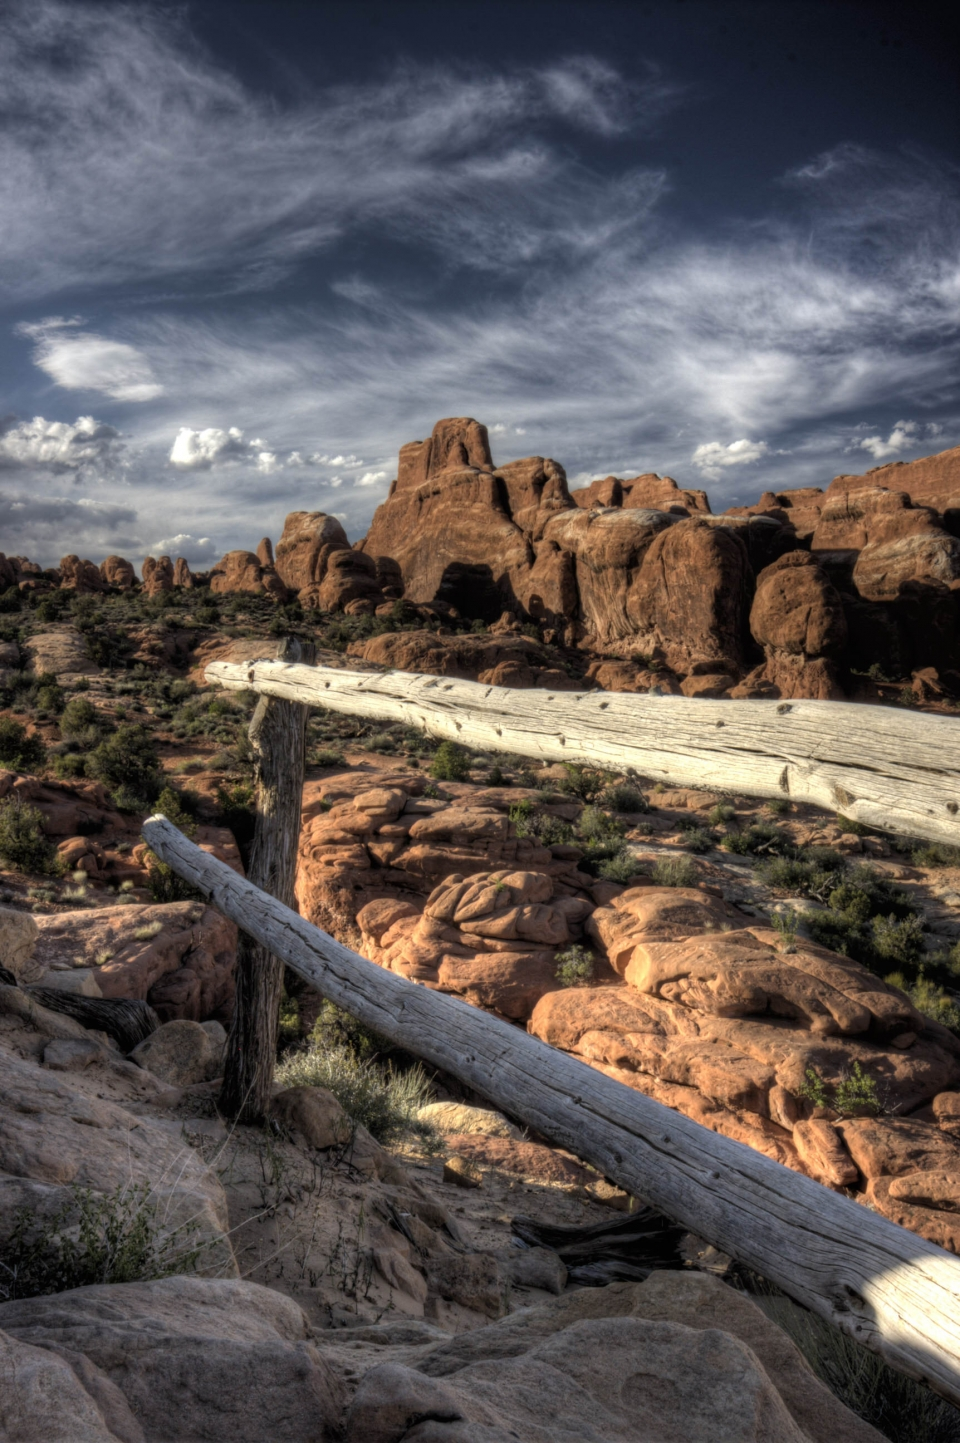 Cloudy, ominous Arches National Park with large rocks